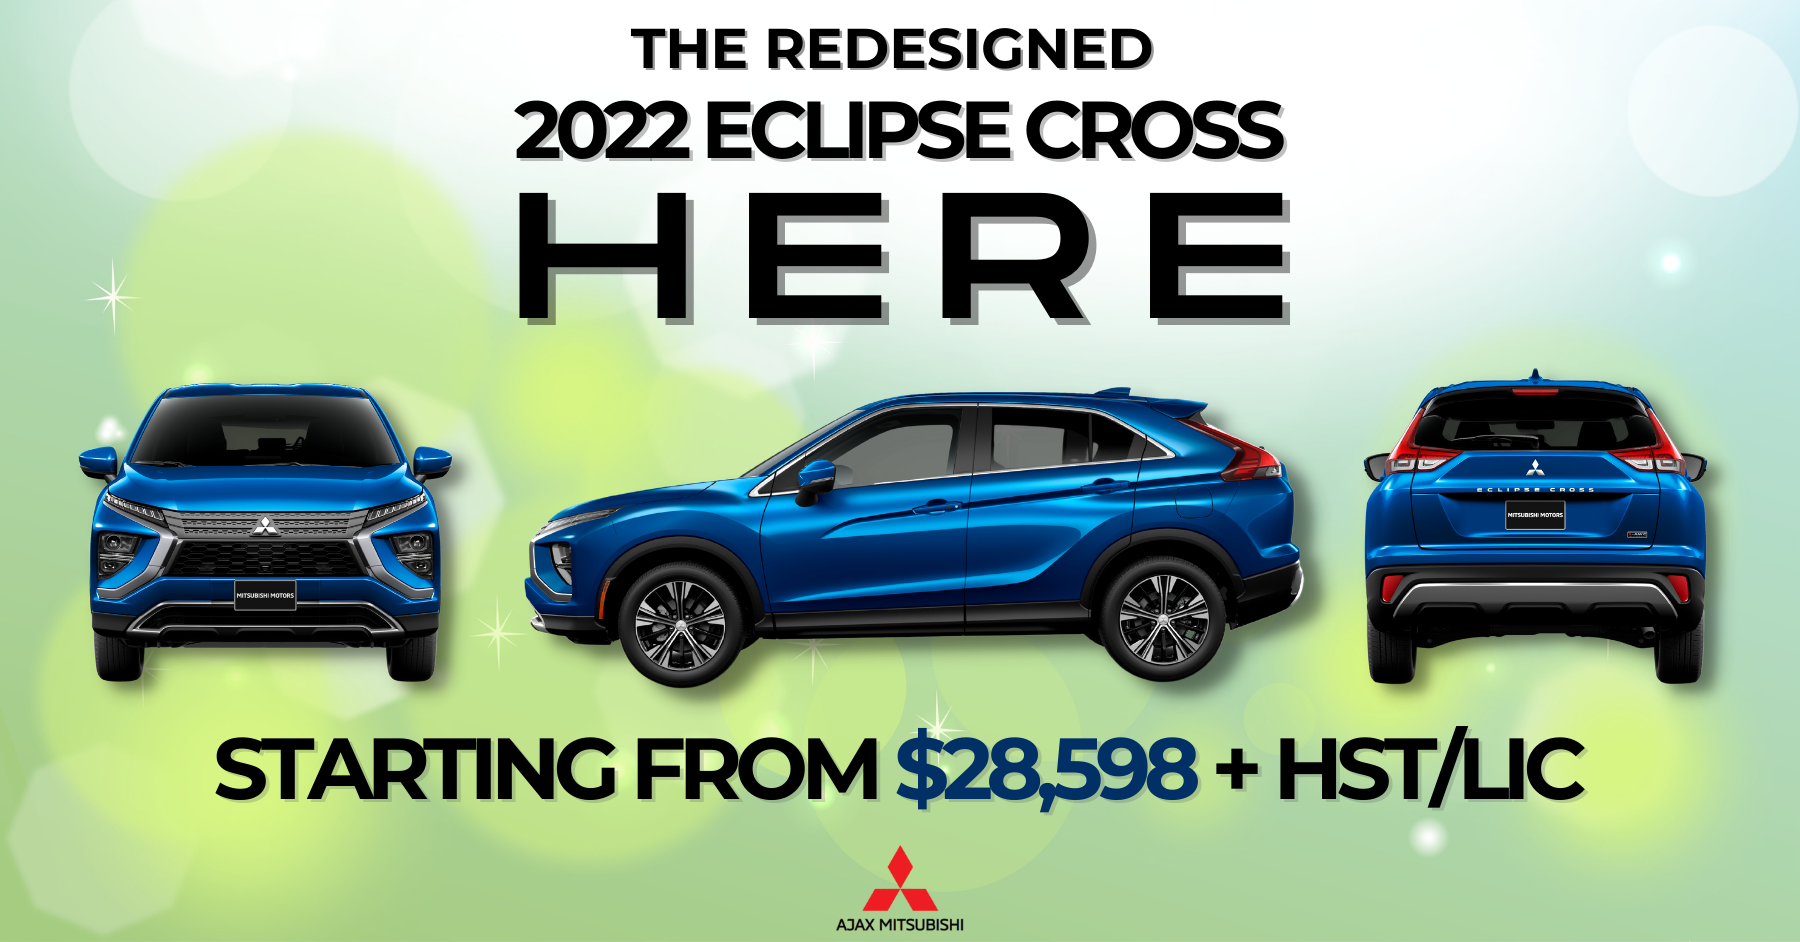 2022 Eclipse Cross, Ajax Mitsubishi